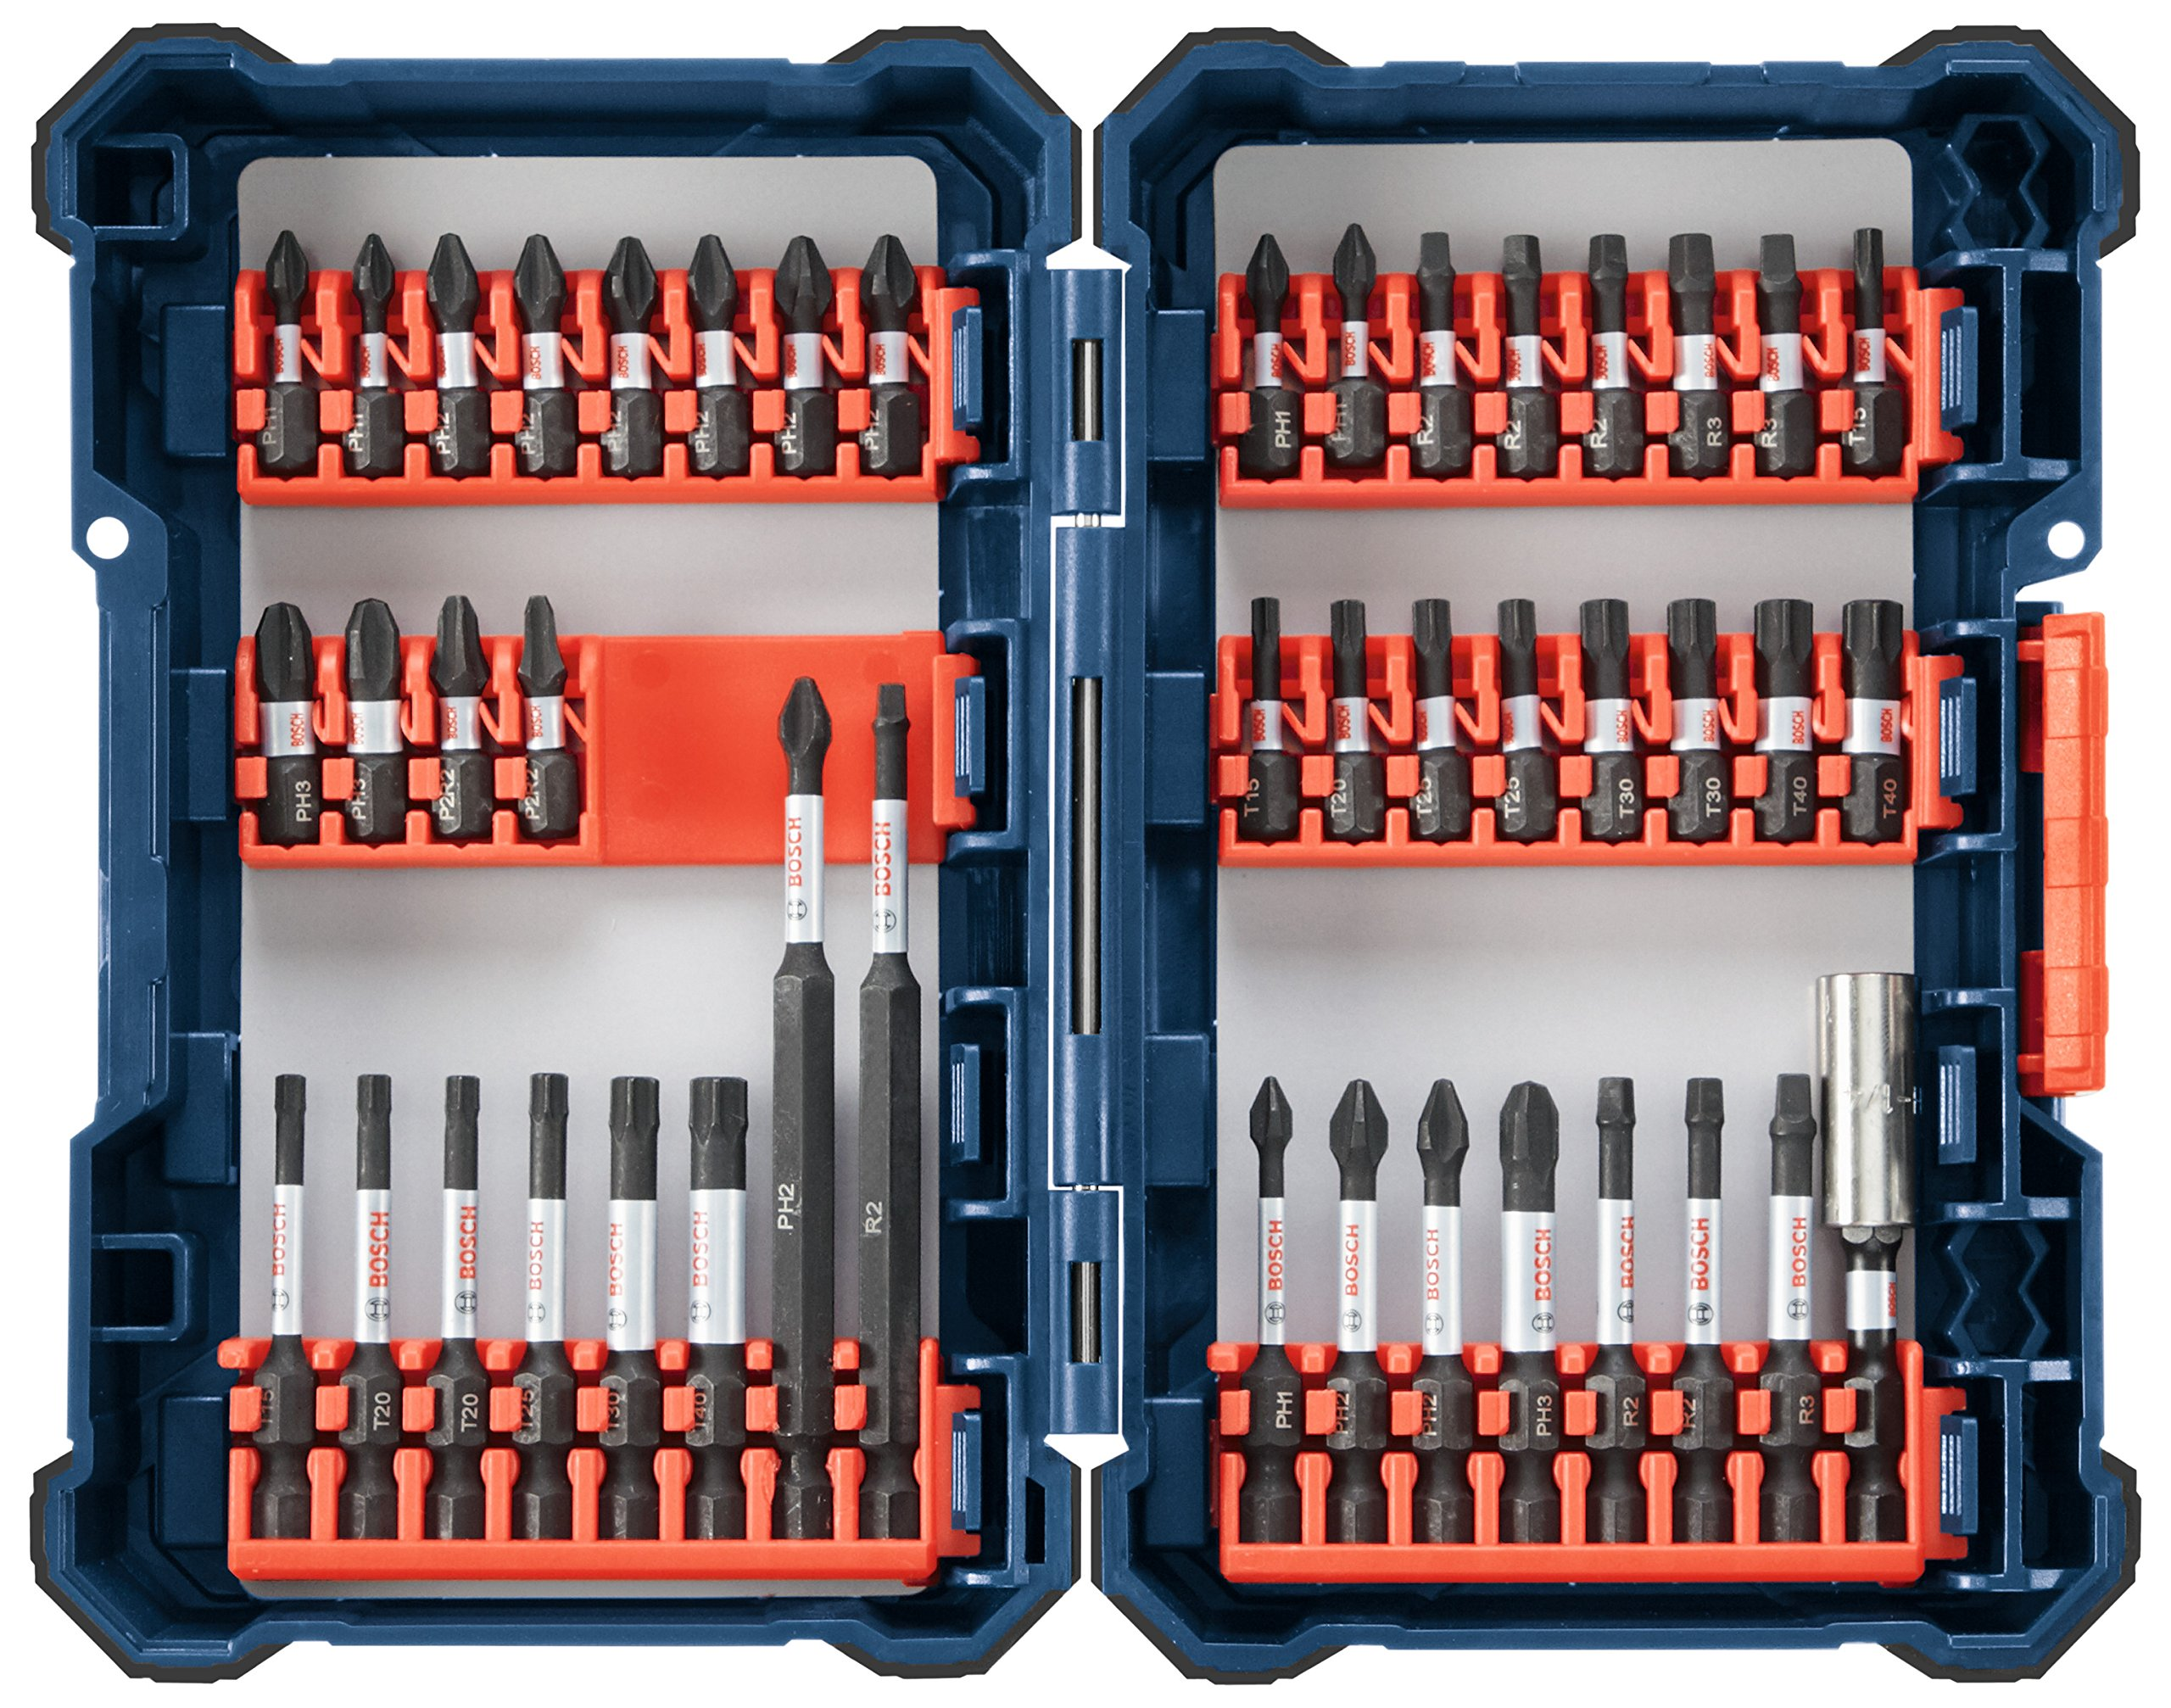 Bosch 44 Piece Impact Tough Screwdriving Custom Case System Set SDMS44